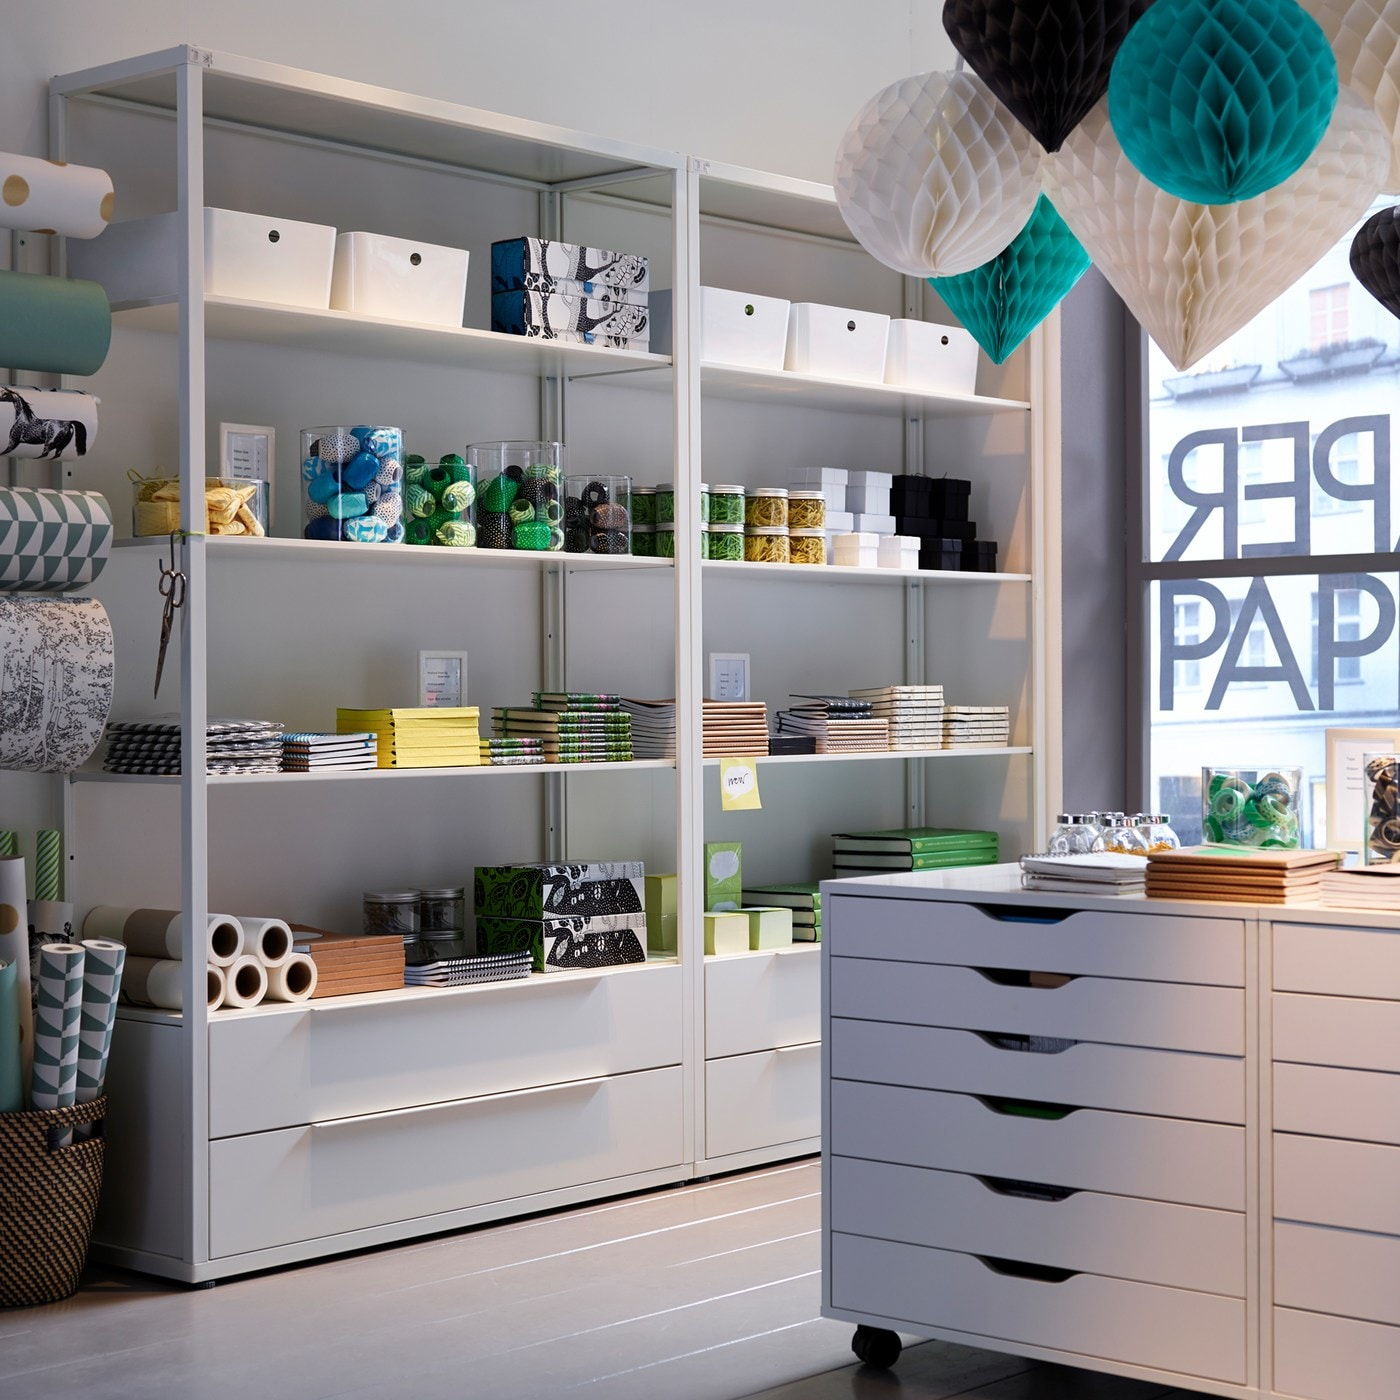 A white-walled paper shop with colourful paper lanterns, white shelving units and white ALEX drawer units on castors.